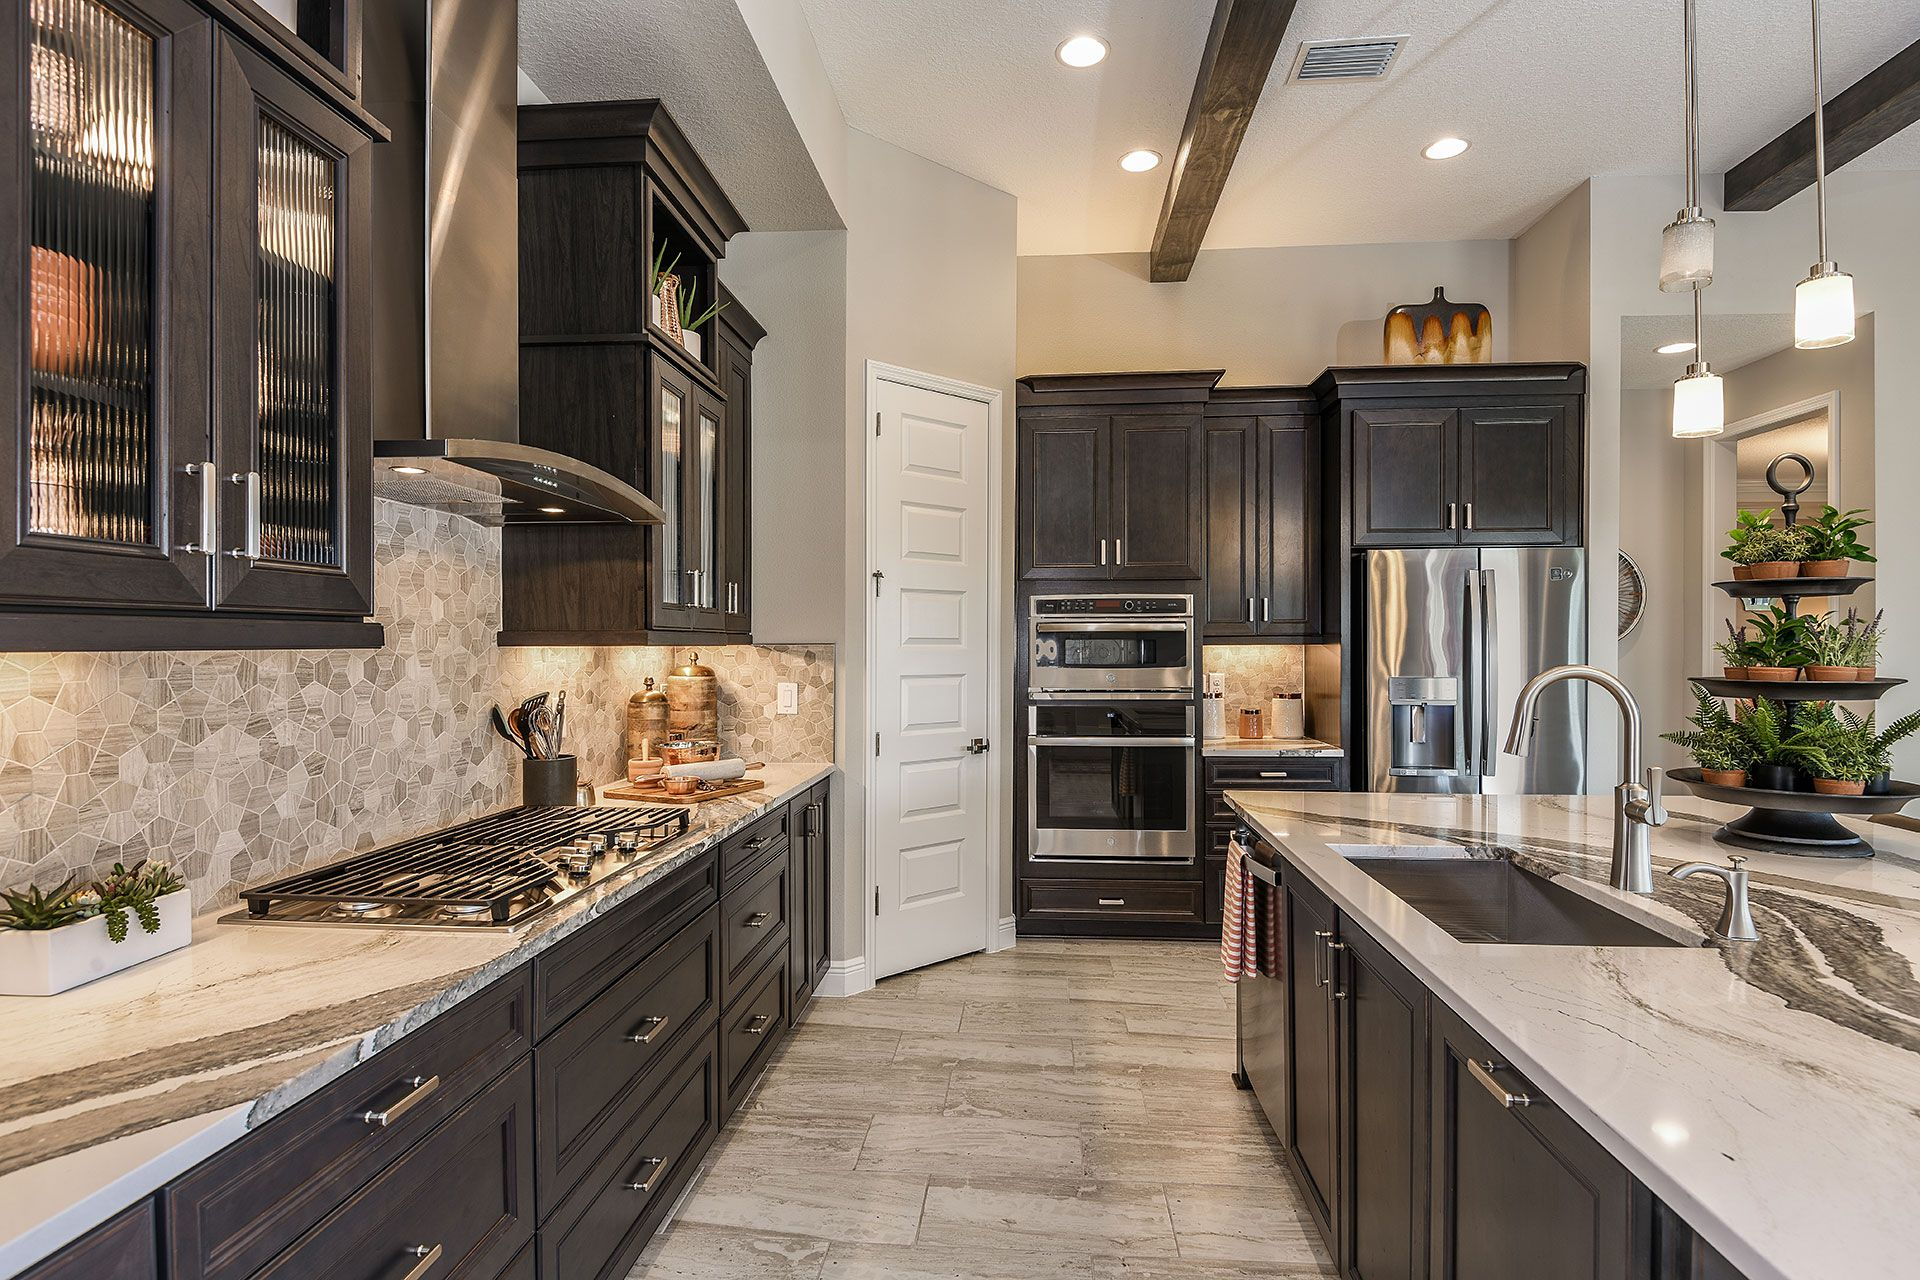 Kitchen featured in the Swann IV By Homes by WestBay in Sarasota-Bradenton, FL